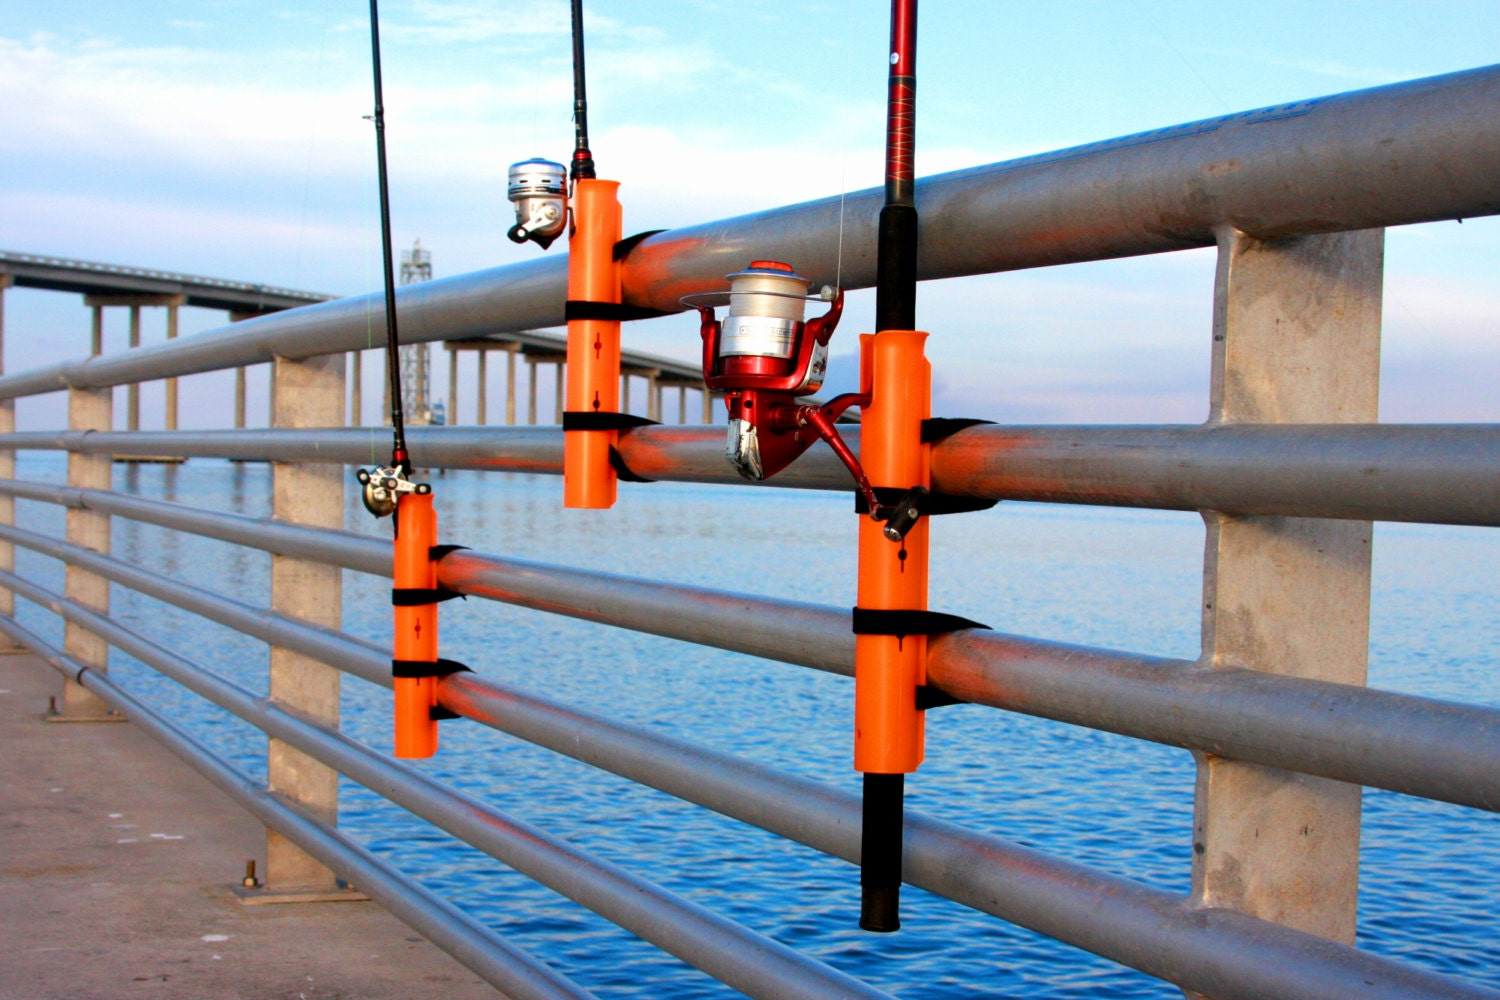 pier a mount fishing rod holder by fishing101 on etsy